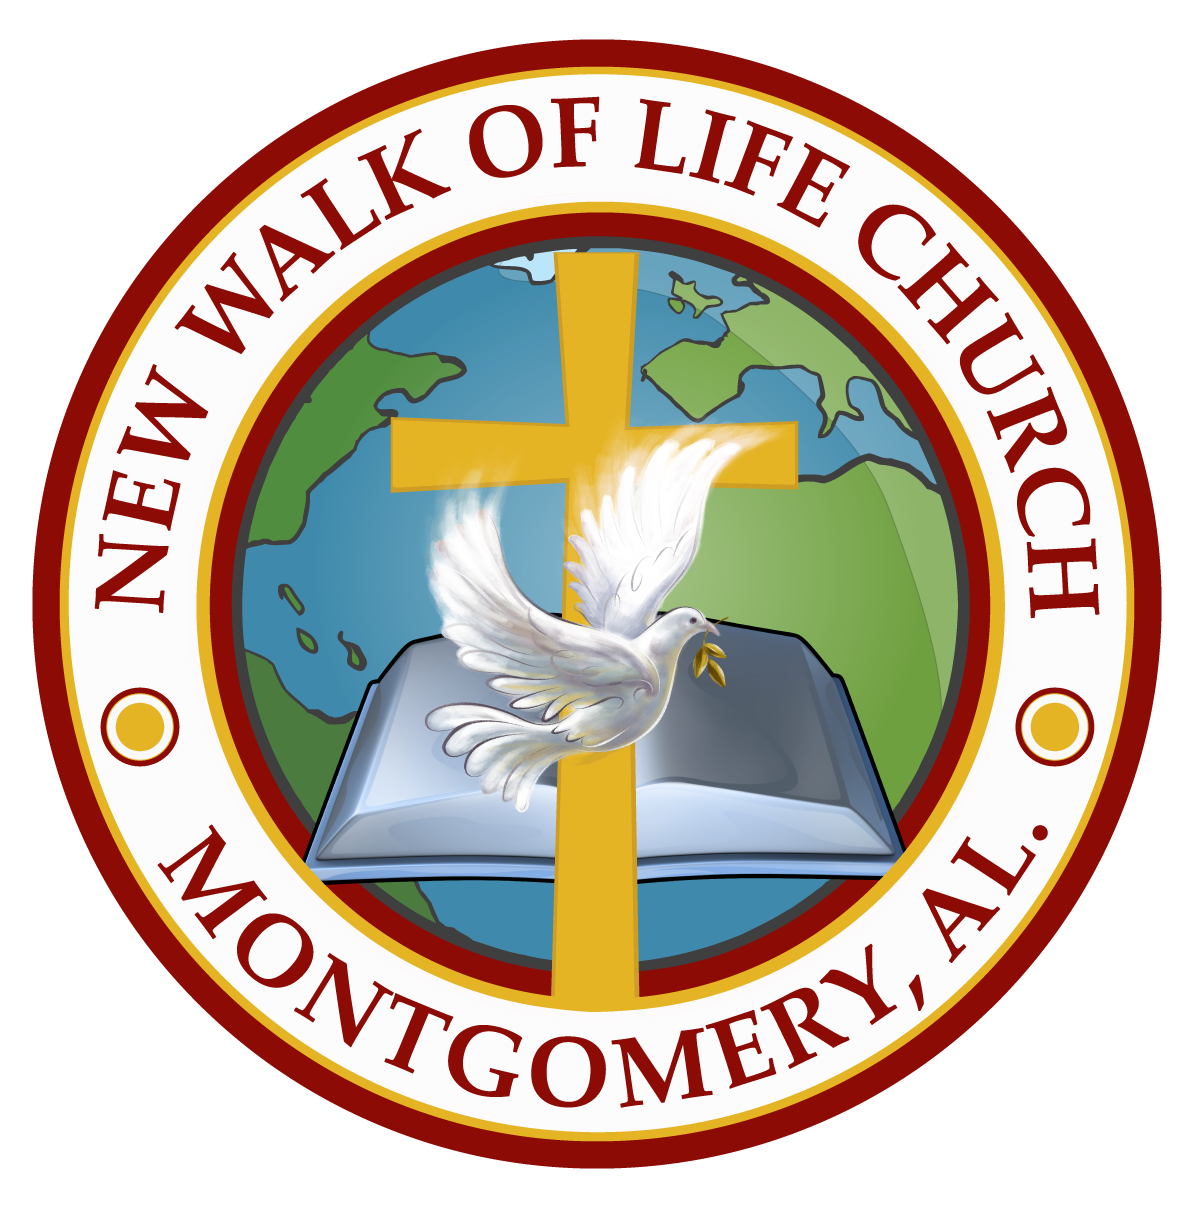 New Walk of Life Church